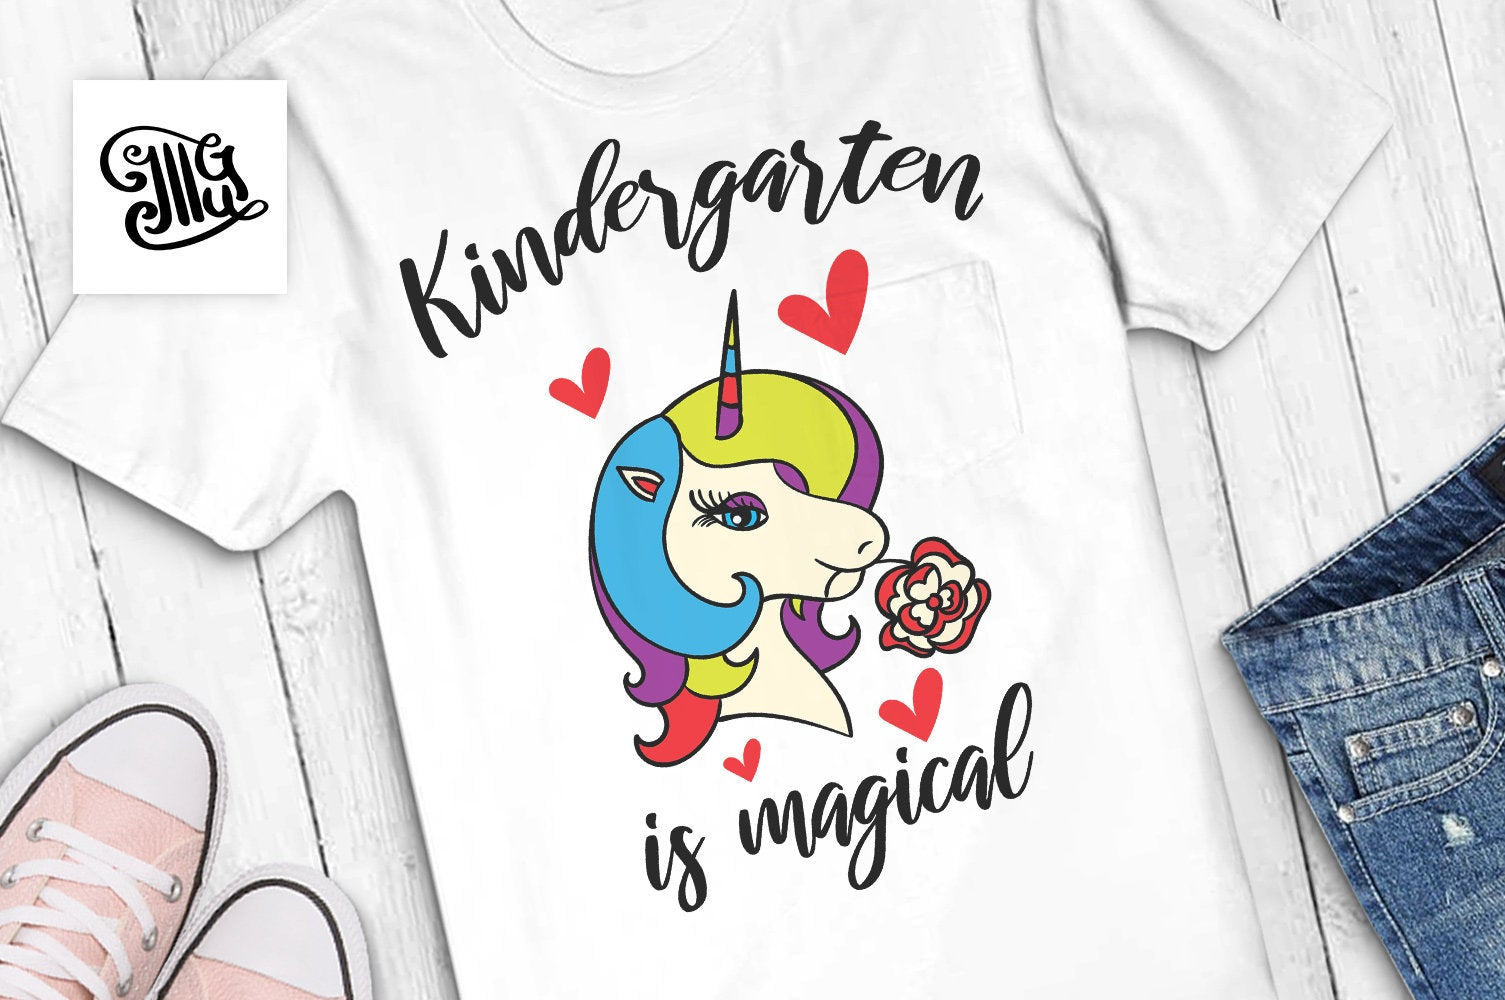 kindergarten is magical SVG, kindergarten svg, kindergarten svg, kindergarten girl svg, first day of school svg, unicorn svg,-by Illustrator Guru